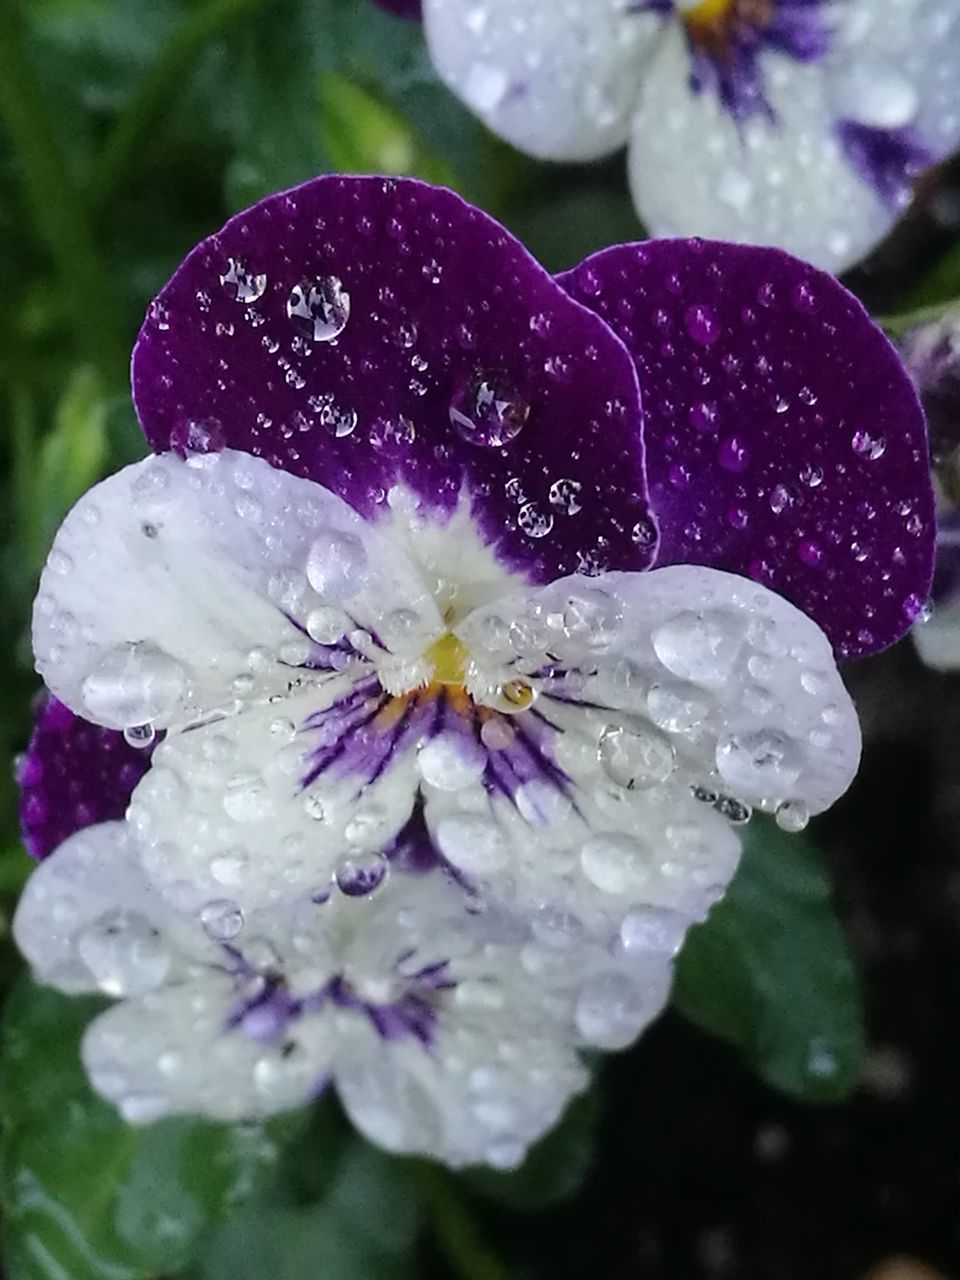 flower, drop, petal, water, wet, beauty in nature, freshness, purple, fragility, nature, close-up, growth, flower head, raindrop, no people, day, outdoors